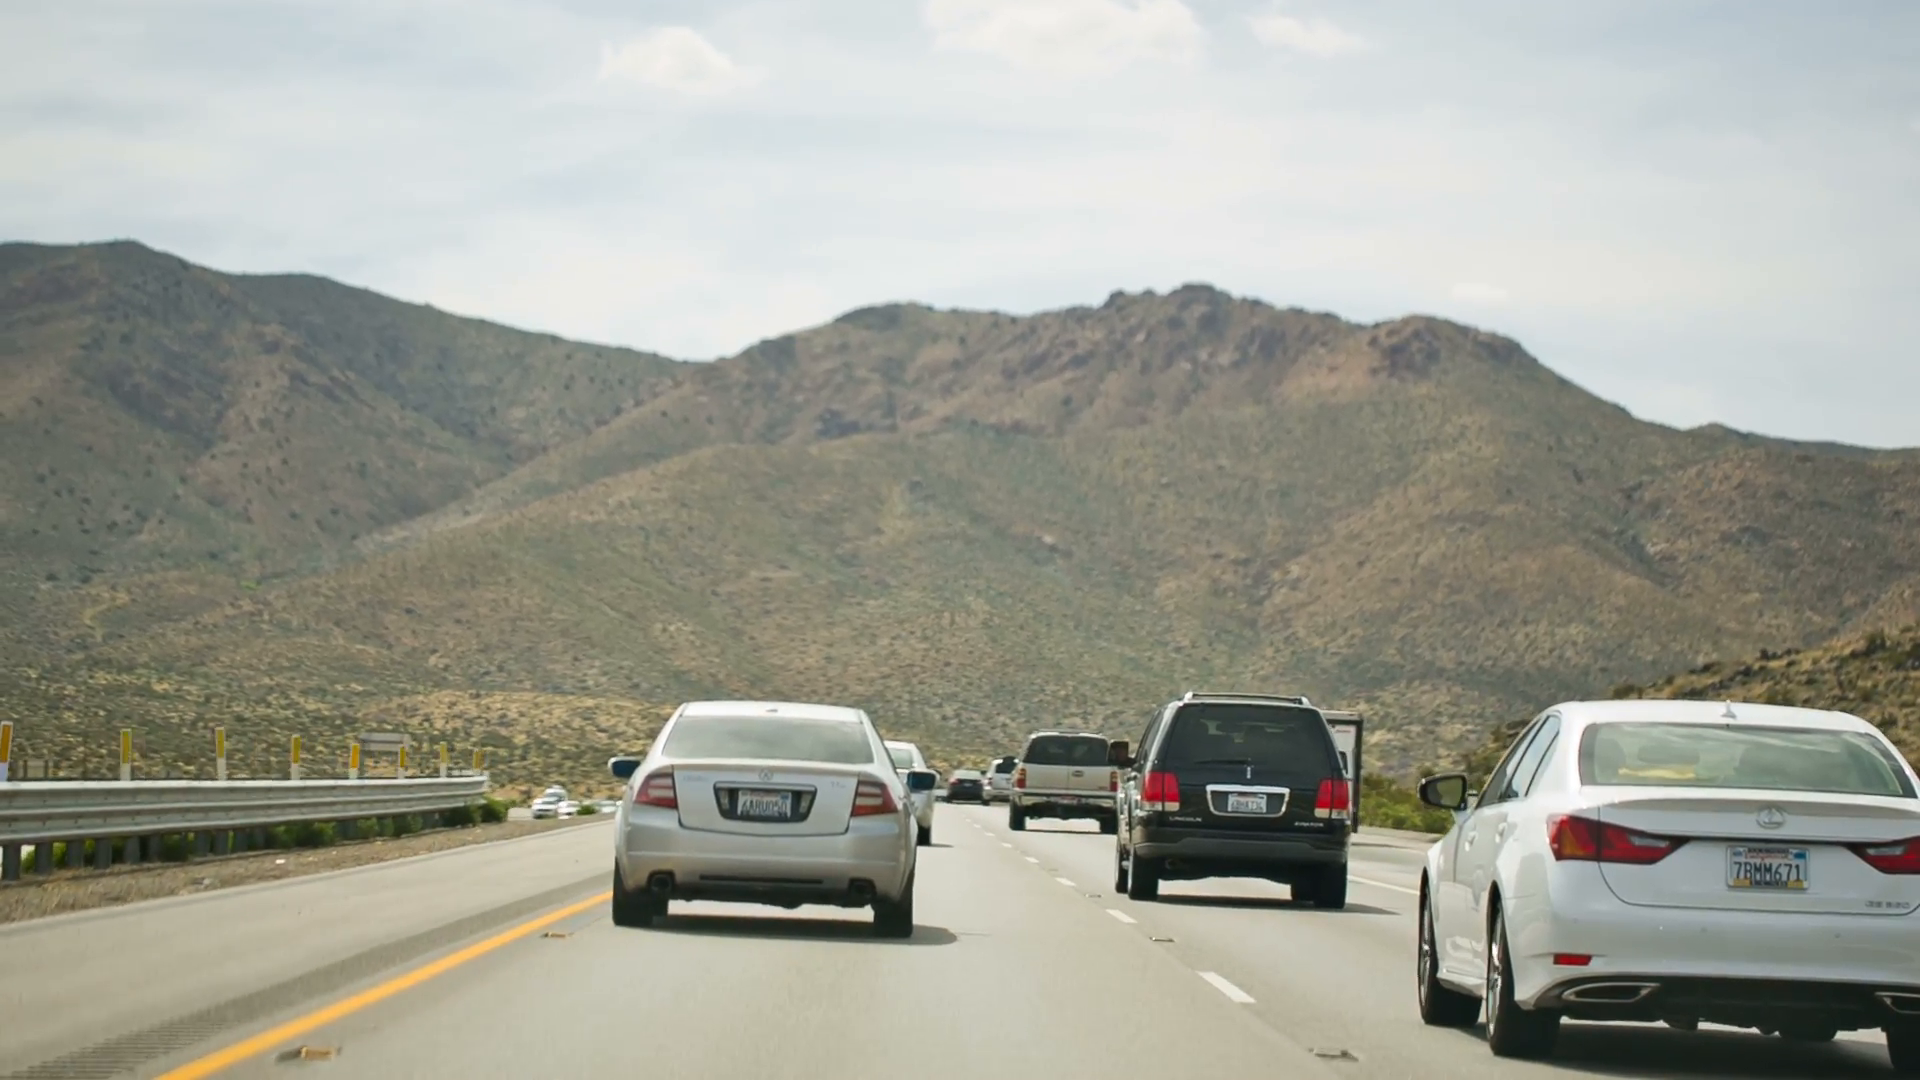 Vehicles on Desert Highway, Freeway Road with Cars Driving, Mountain ...